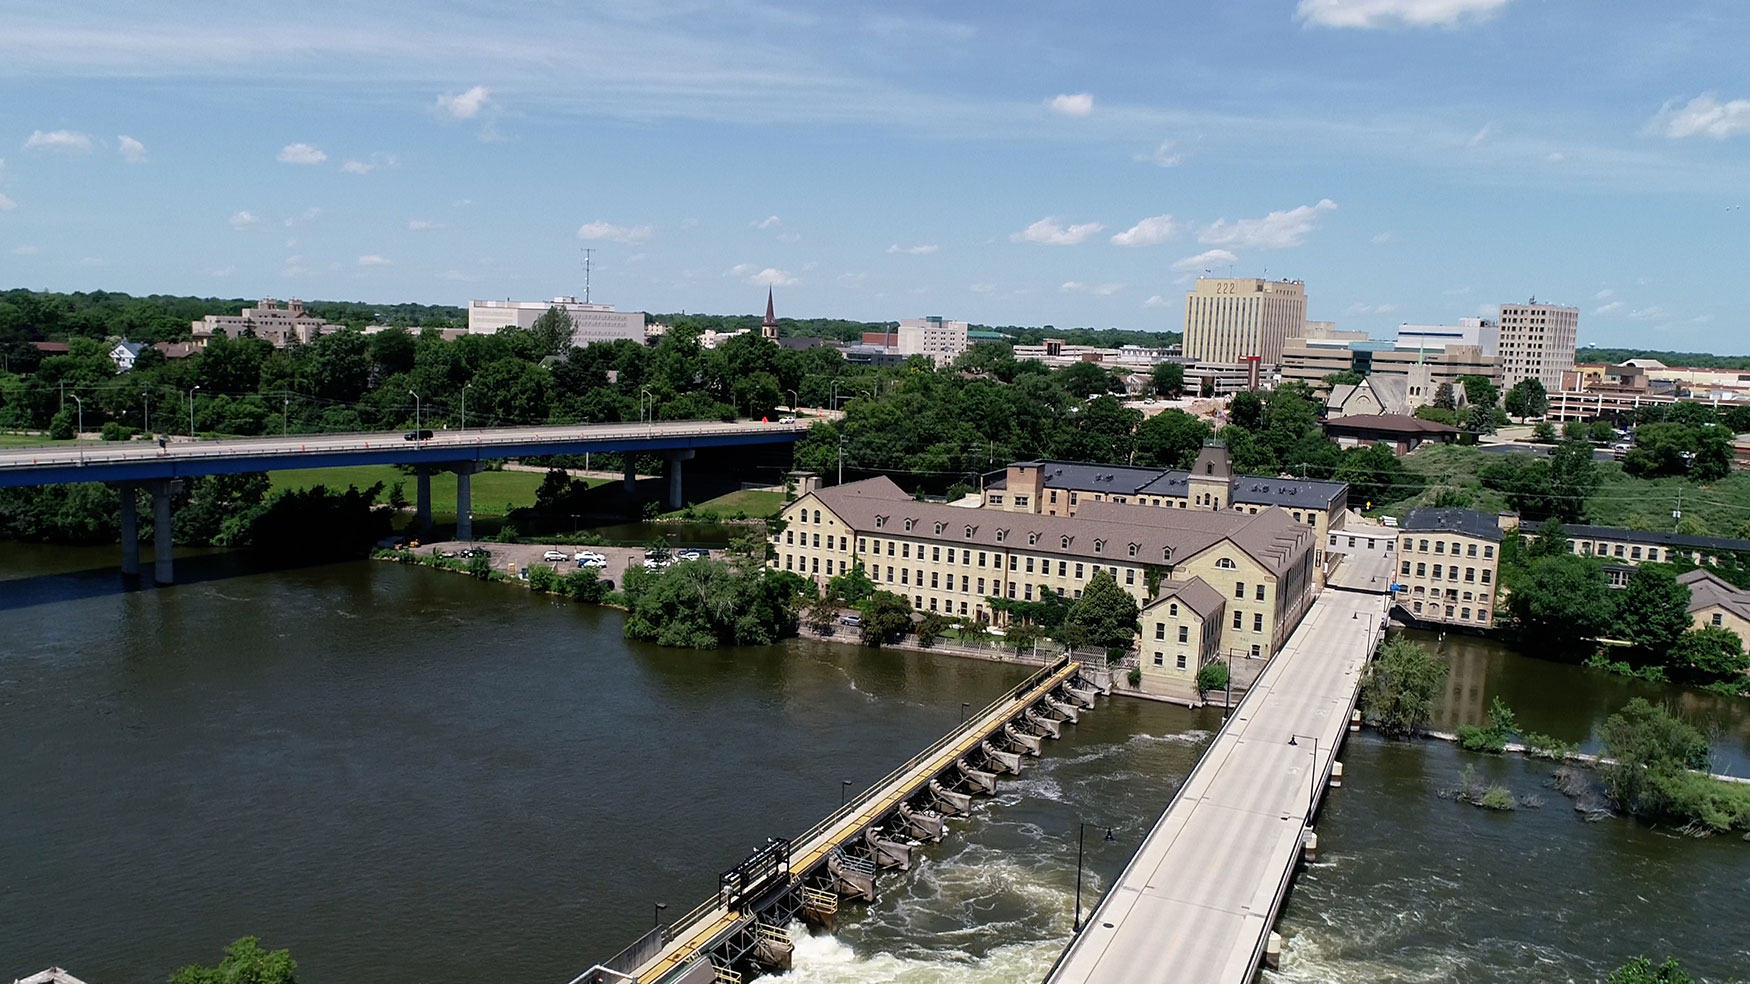 WI drone pilots, licensed & insured drone pilots,drone operators,WI drones,arial,aerial photographers